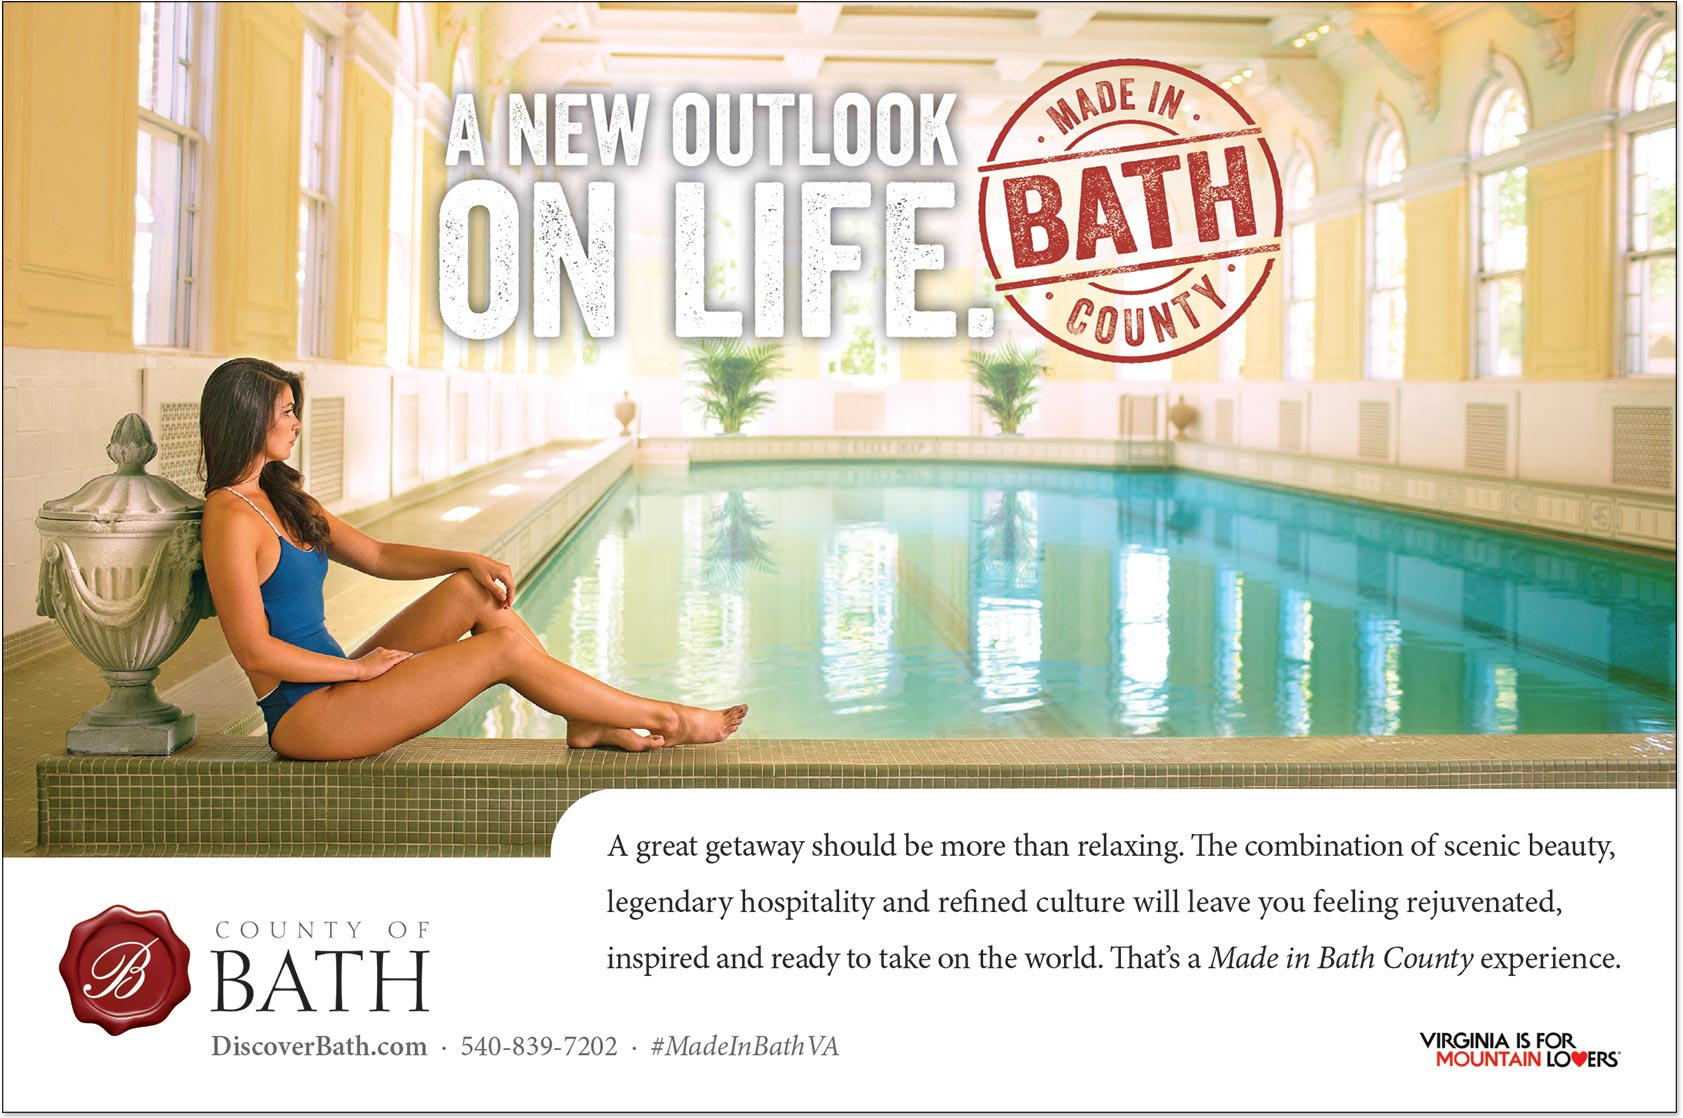 Bath County New Outlook on Life Ad